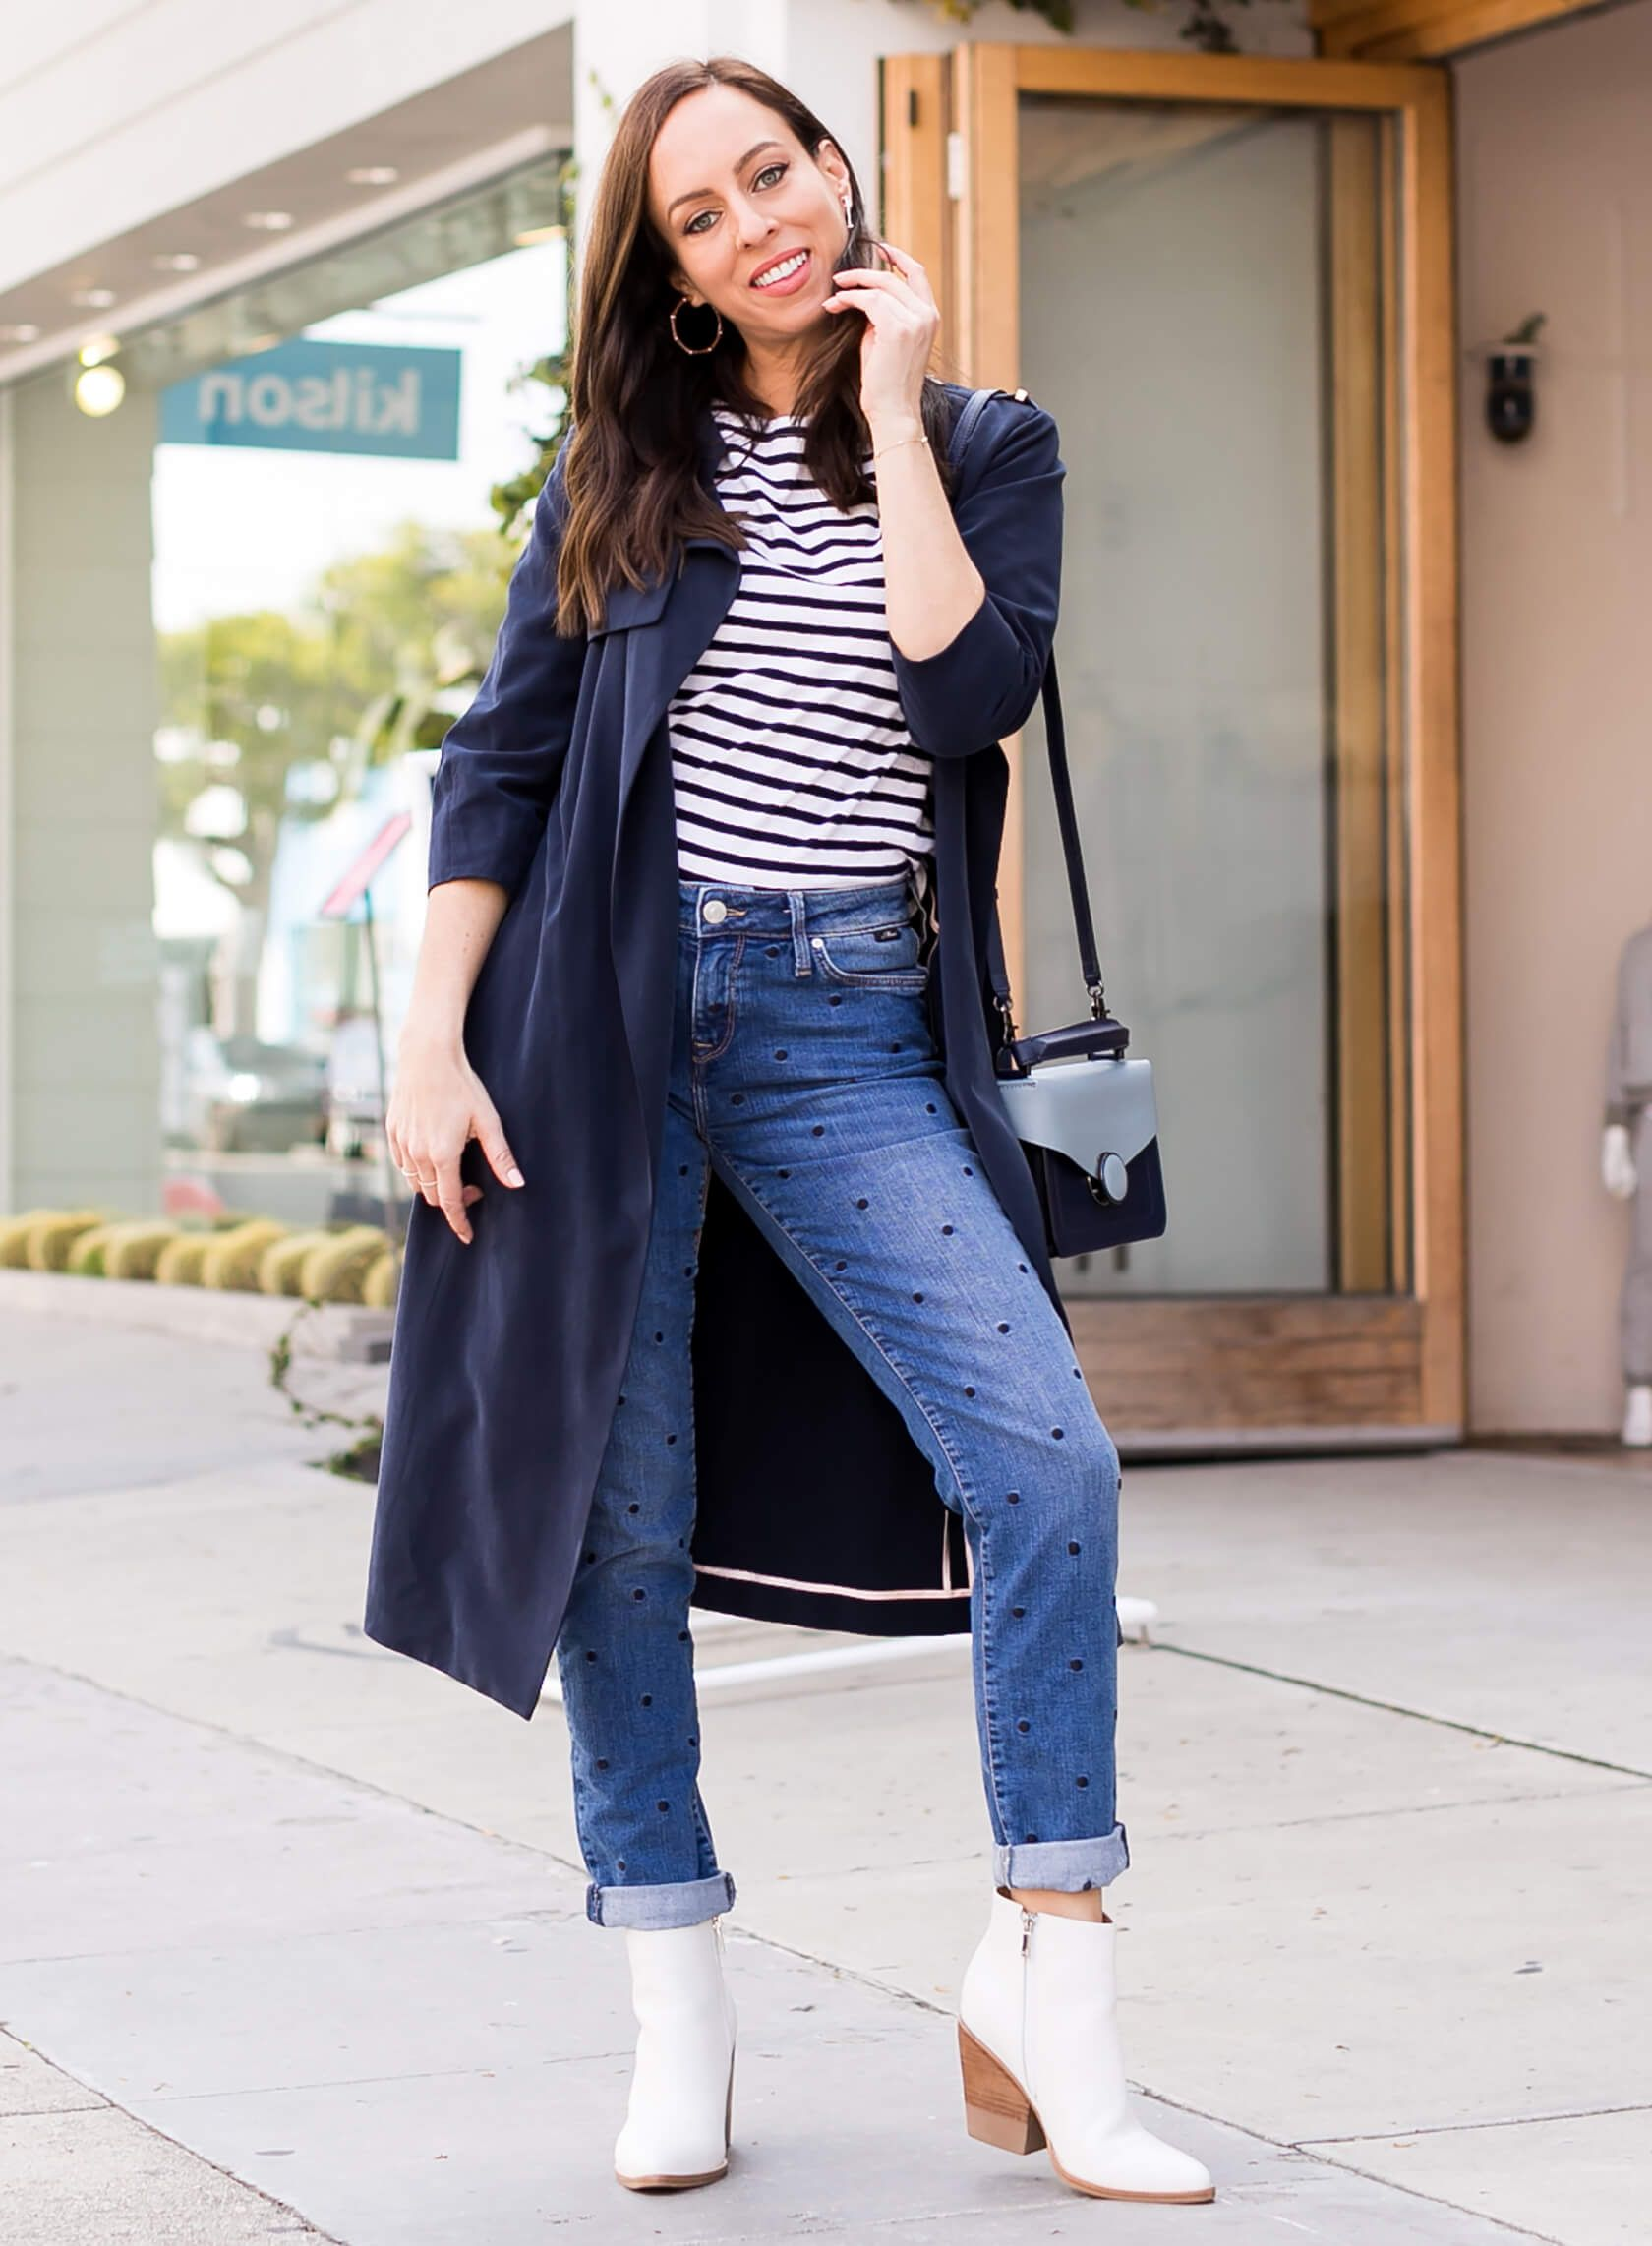 74196c6de466 Sydne Style shows how to mix prints in polka dot jeans and striped tee # polkadots #jeans #trench #stripes #mixedprints @sydnesummer